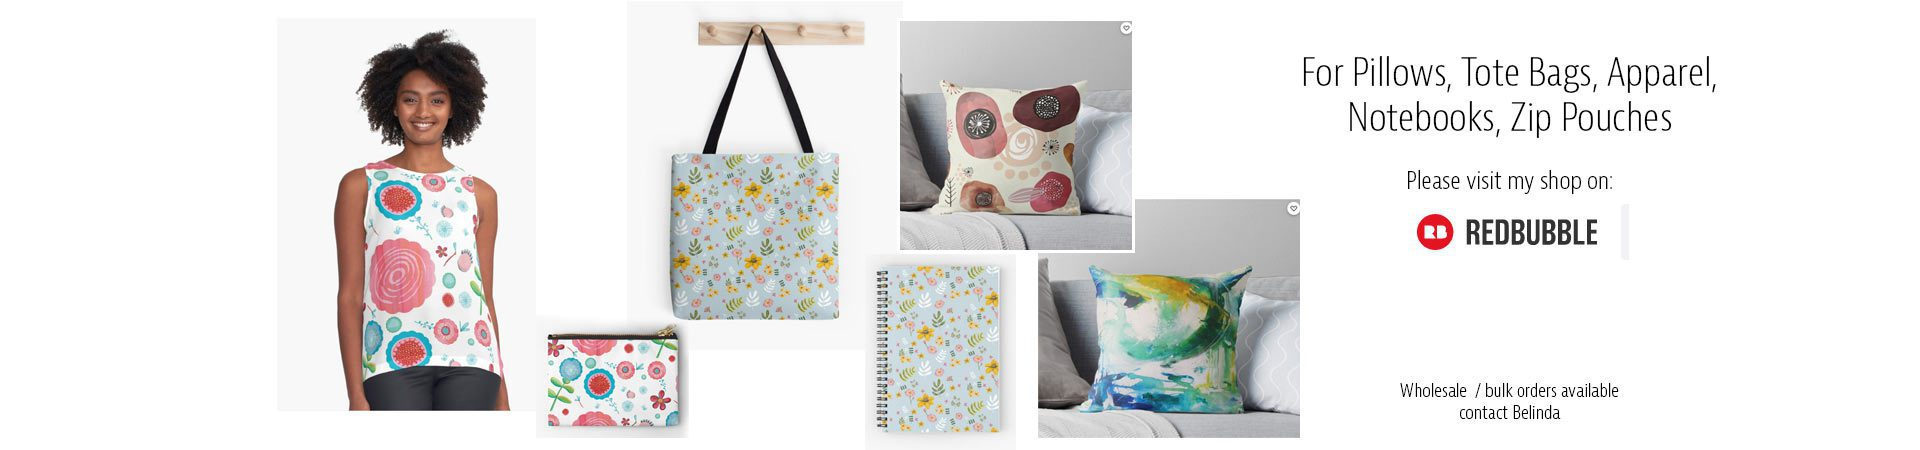 Shop for pillows, tote bags, at RedBubble